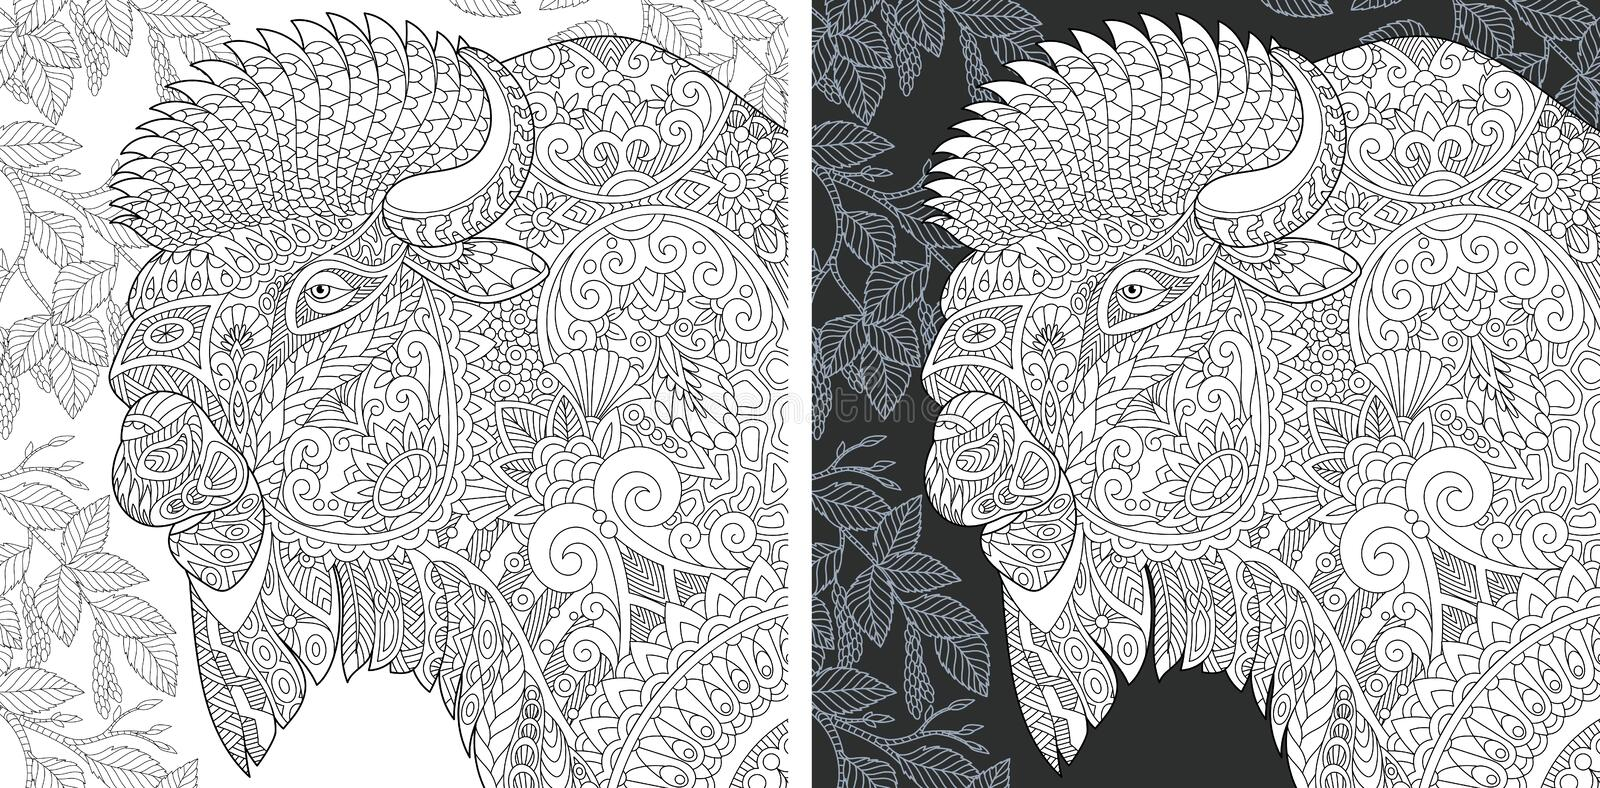 Coloring page with bison royalty free illustration